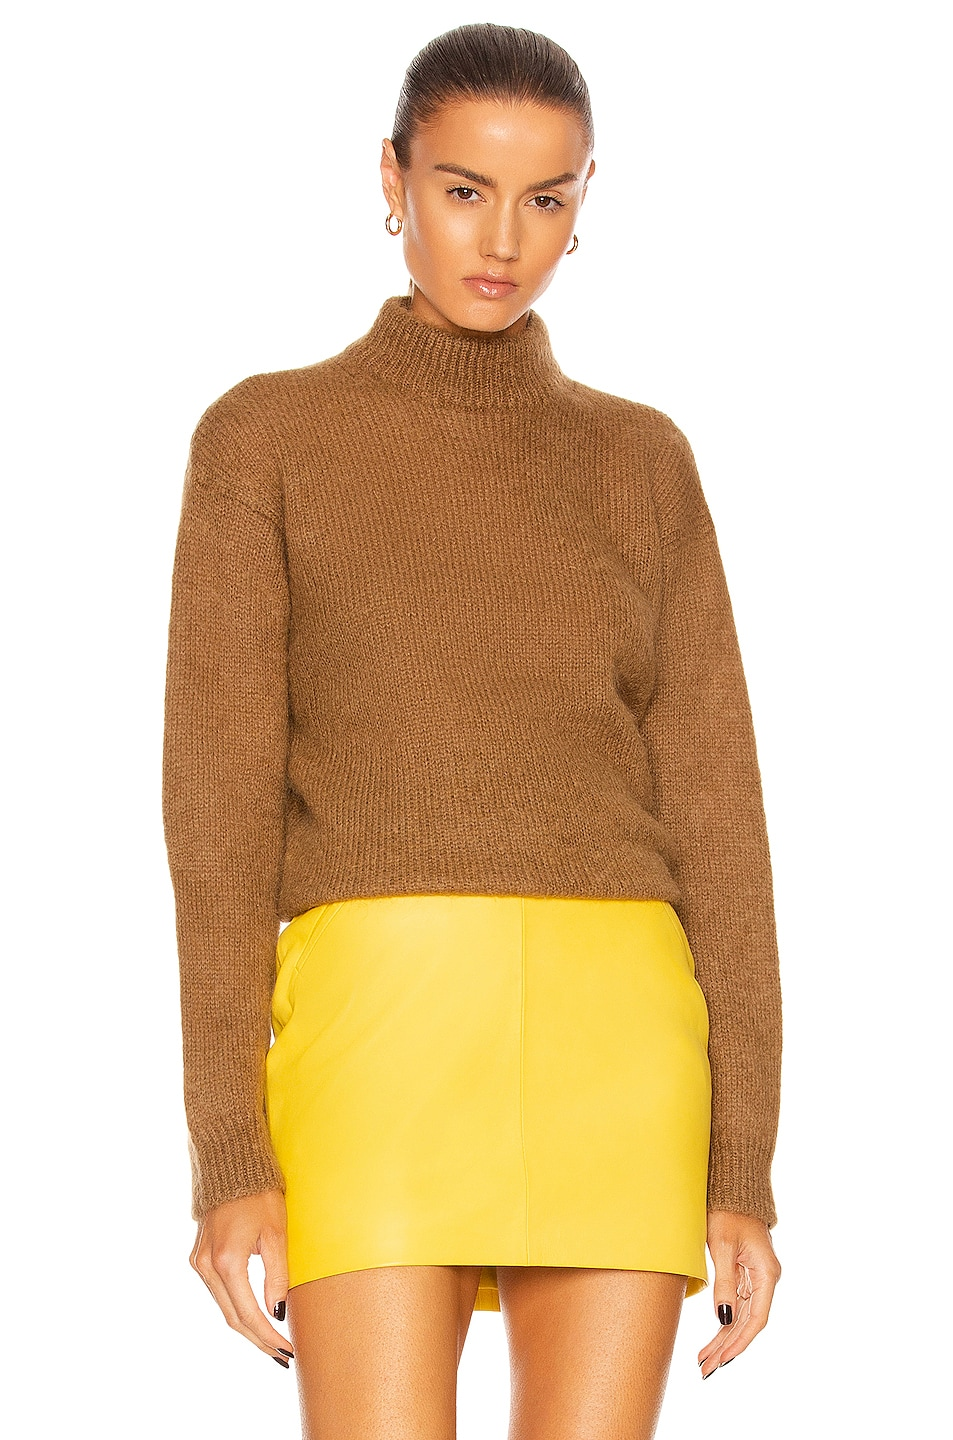 Image 1 of TOM FORD Brushed Mohair Mock Neck Sweater in Honey Nude